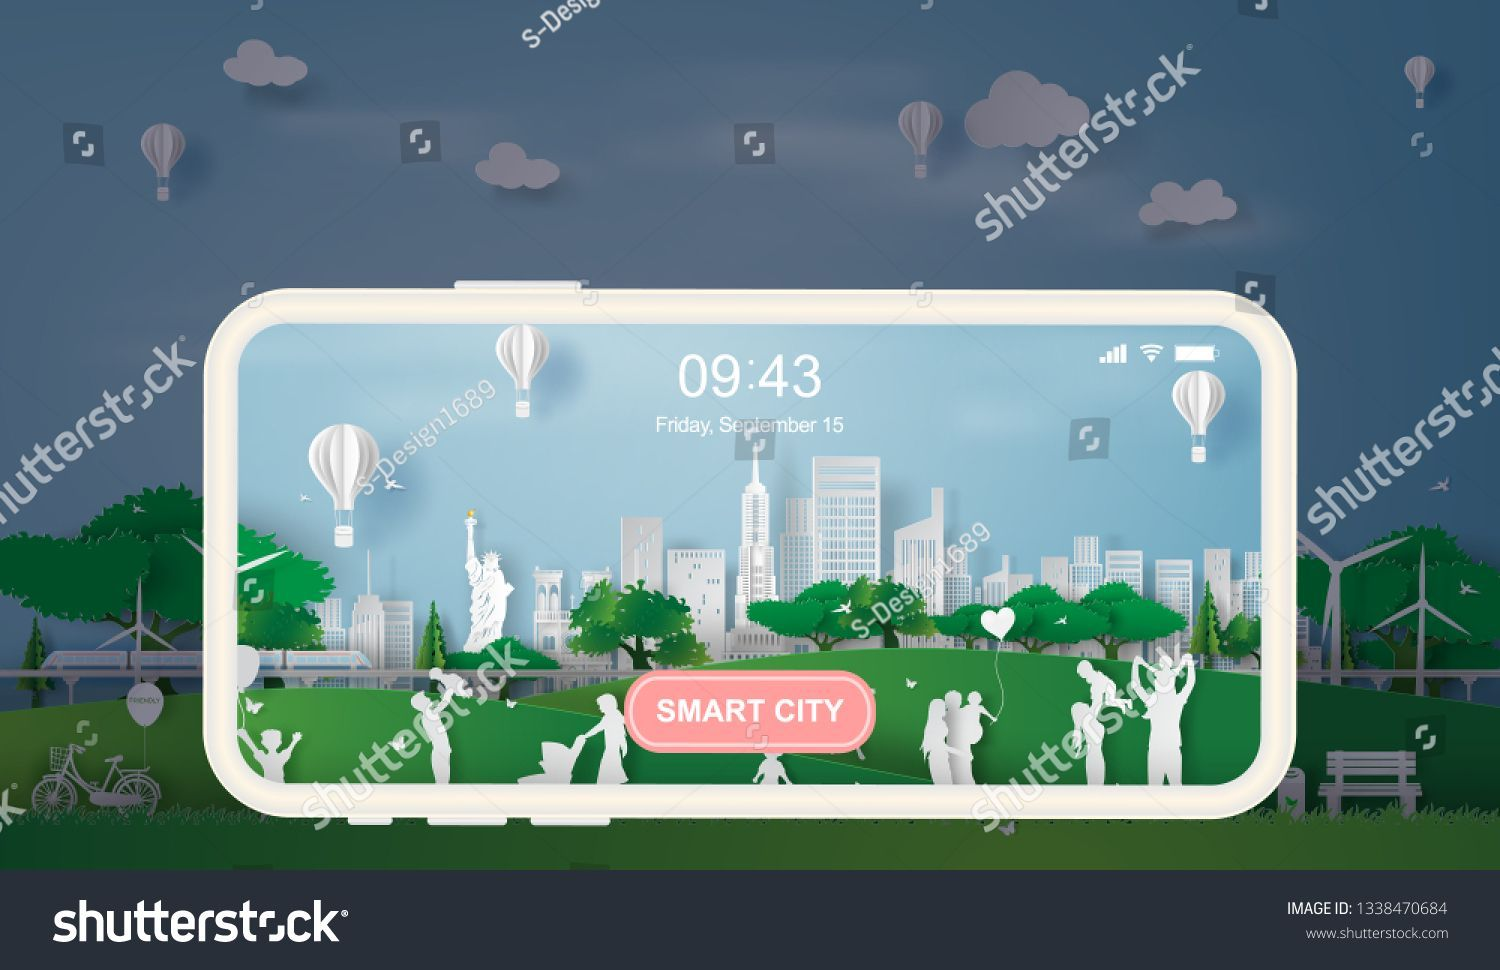 Paper art style of eco landscape in the New York City America with happy family having fun,People big family enjoy fresh air in outdoor park,illustration design ecology smart city concept vector. #Sponsored , #SPONSORED, #happy#America#City#People #art #Eco #Free #Landscape #paper #Royalty #stock #style #Vector